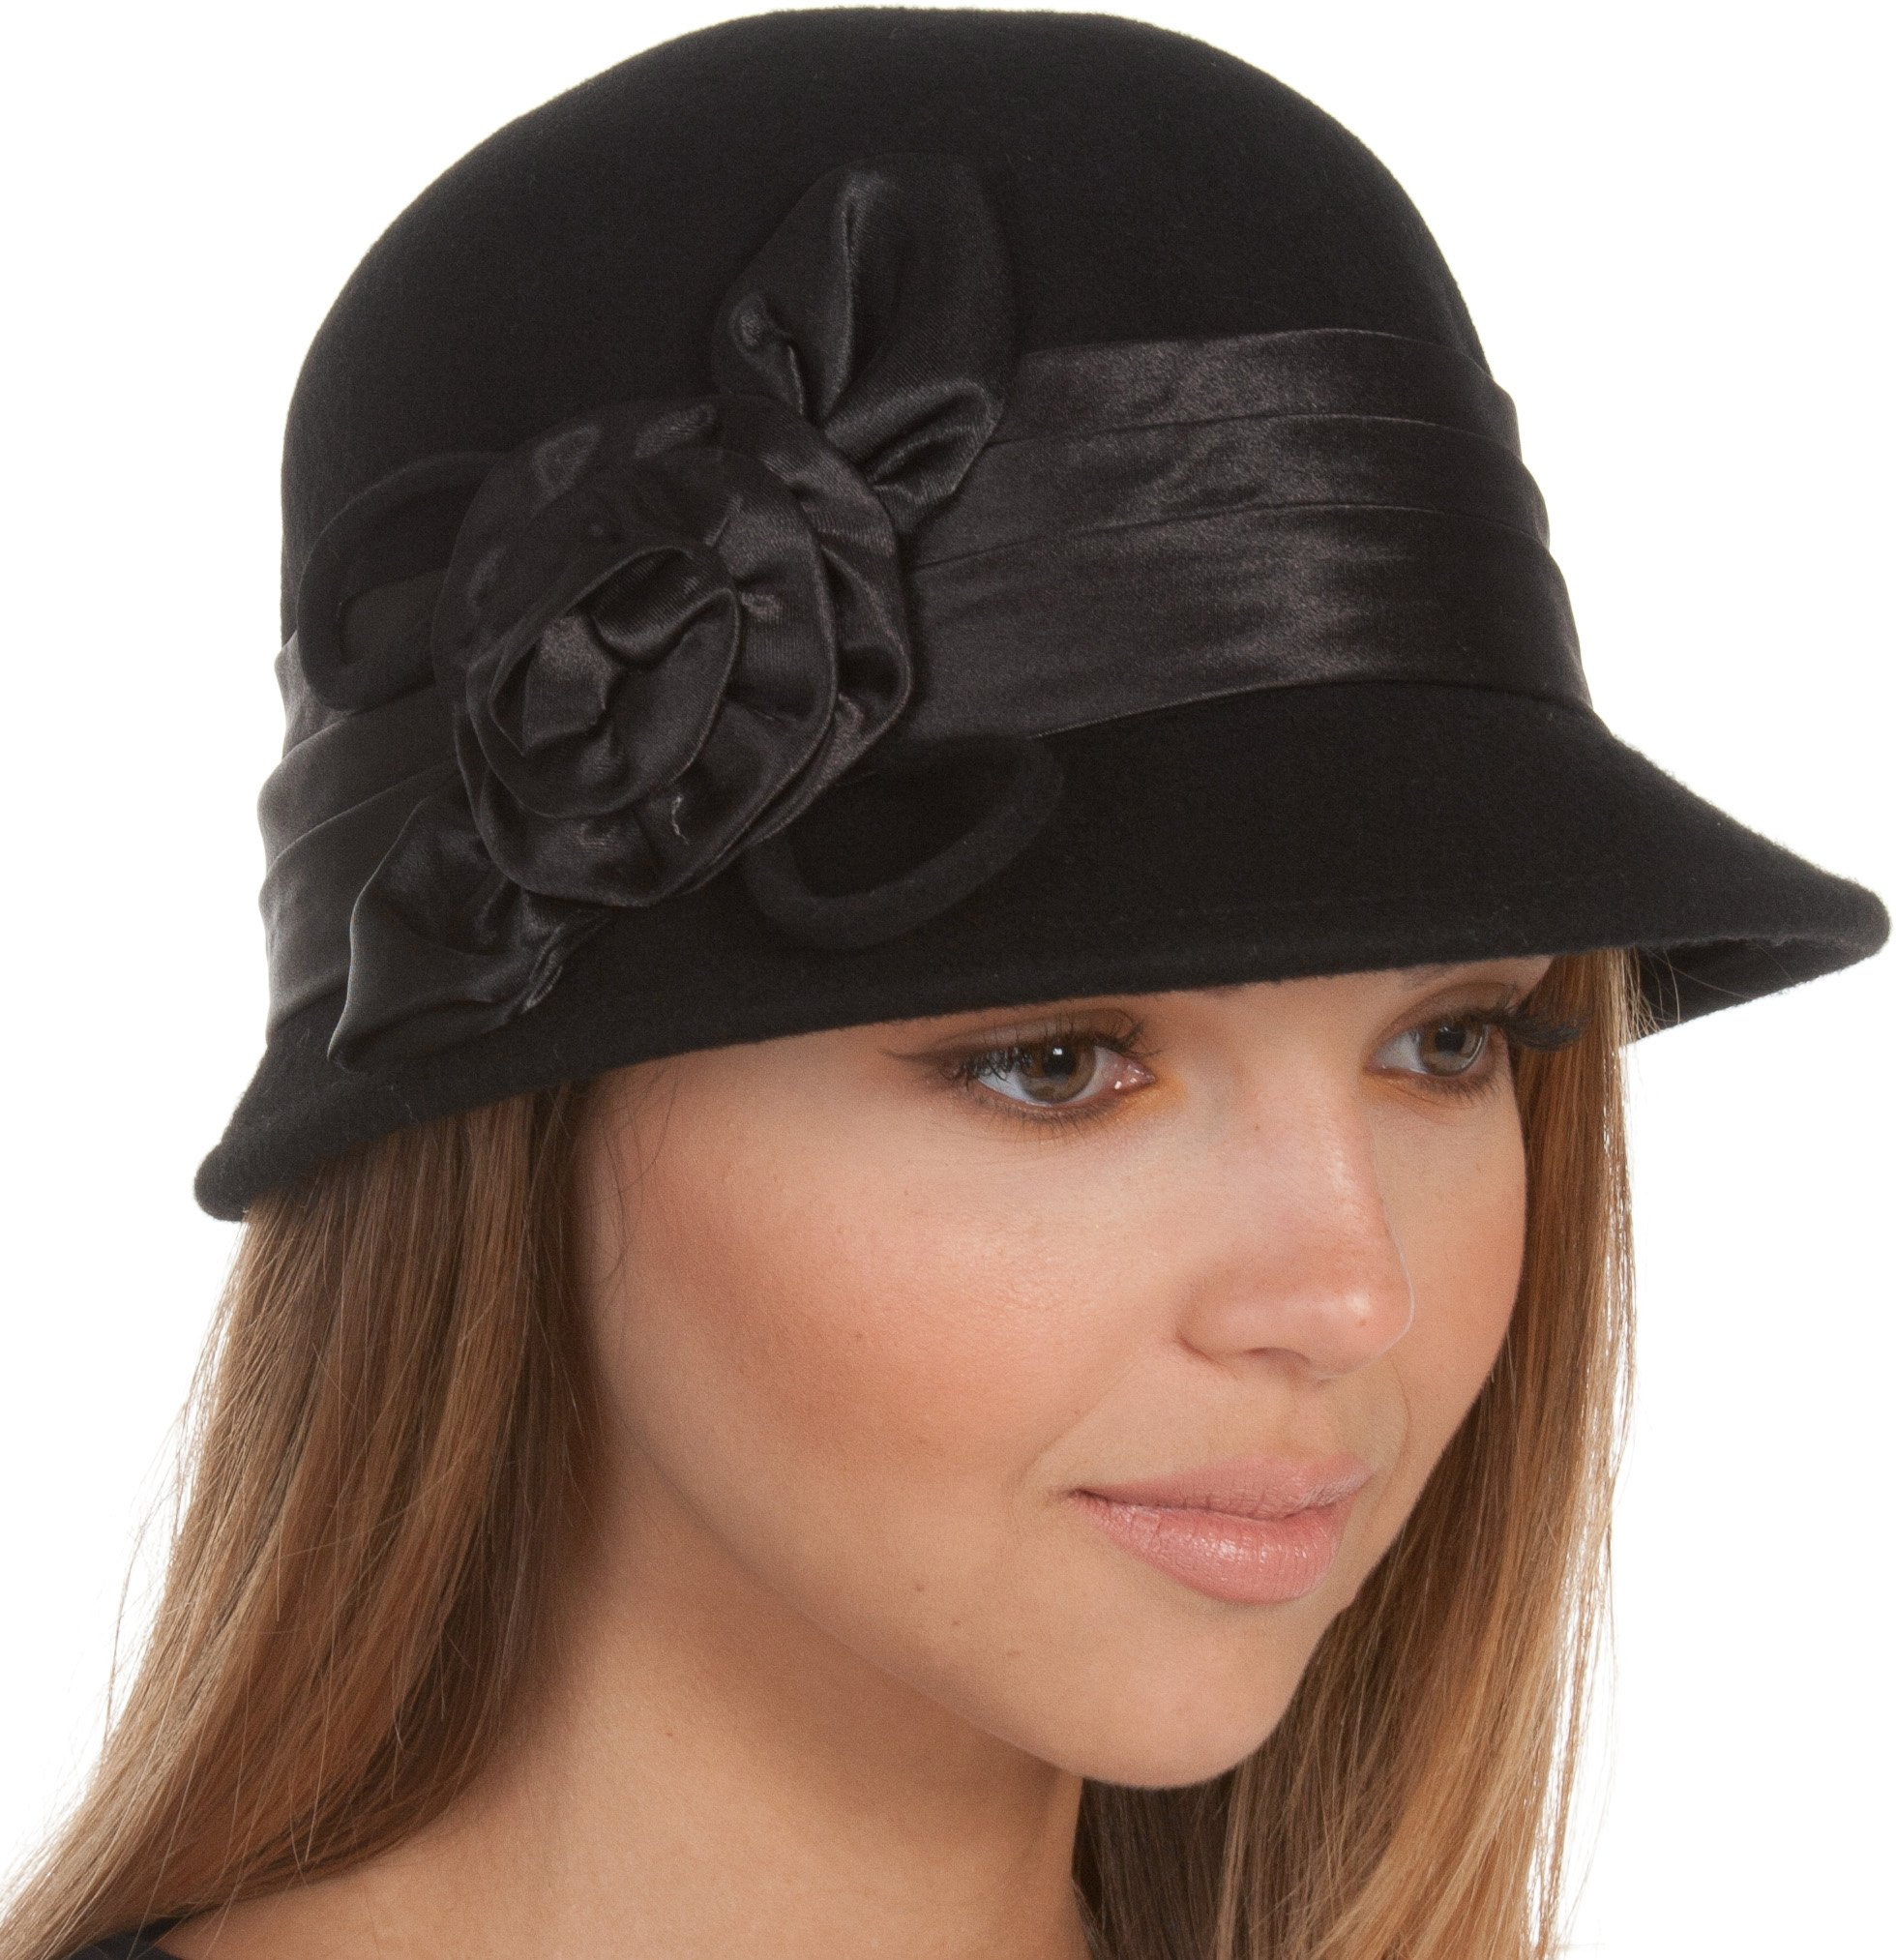 EH1121LC - Womens Vintage Style 100% Wool Cloche Bucket Winter Hat with Satin Flower Accent (6 Colors) - Black/One Size